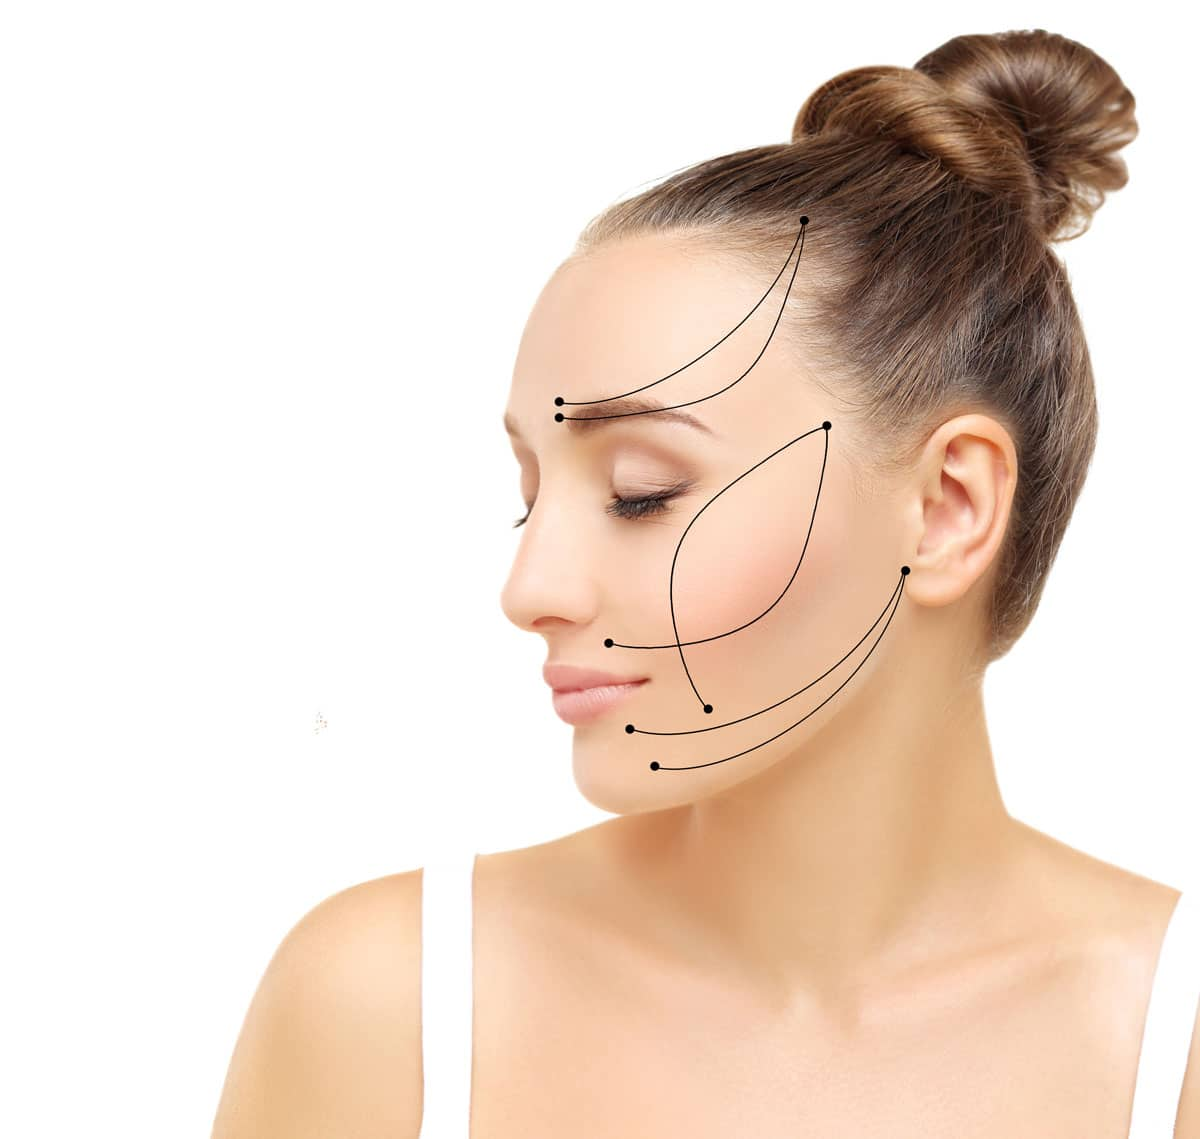 Woman facing sideways with lines going up her face